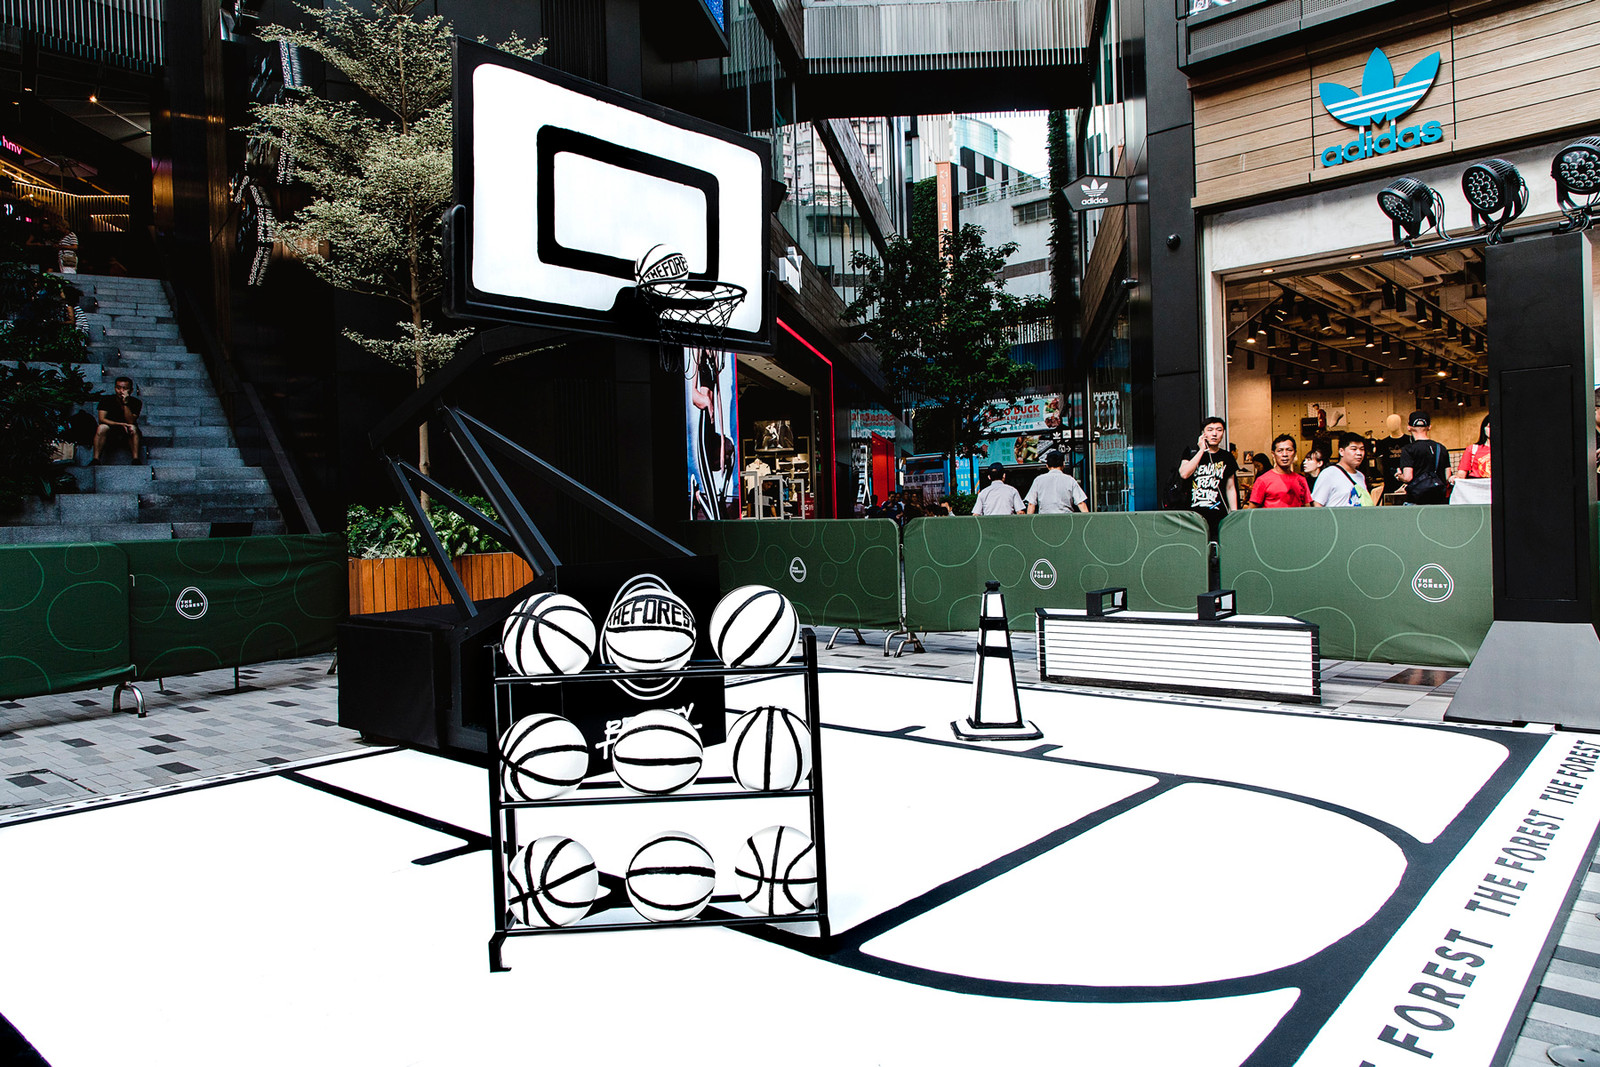 Joshua Vides Artist art Streewear Hustle interview reality to idea the forest hong kong china basketball court sneaker nike air force 1 jordan lebron james black and white outline cones cone mong kok